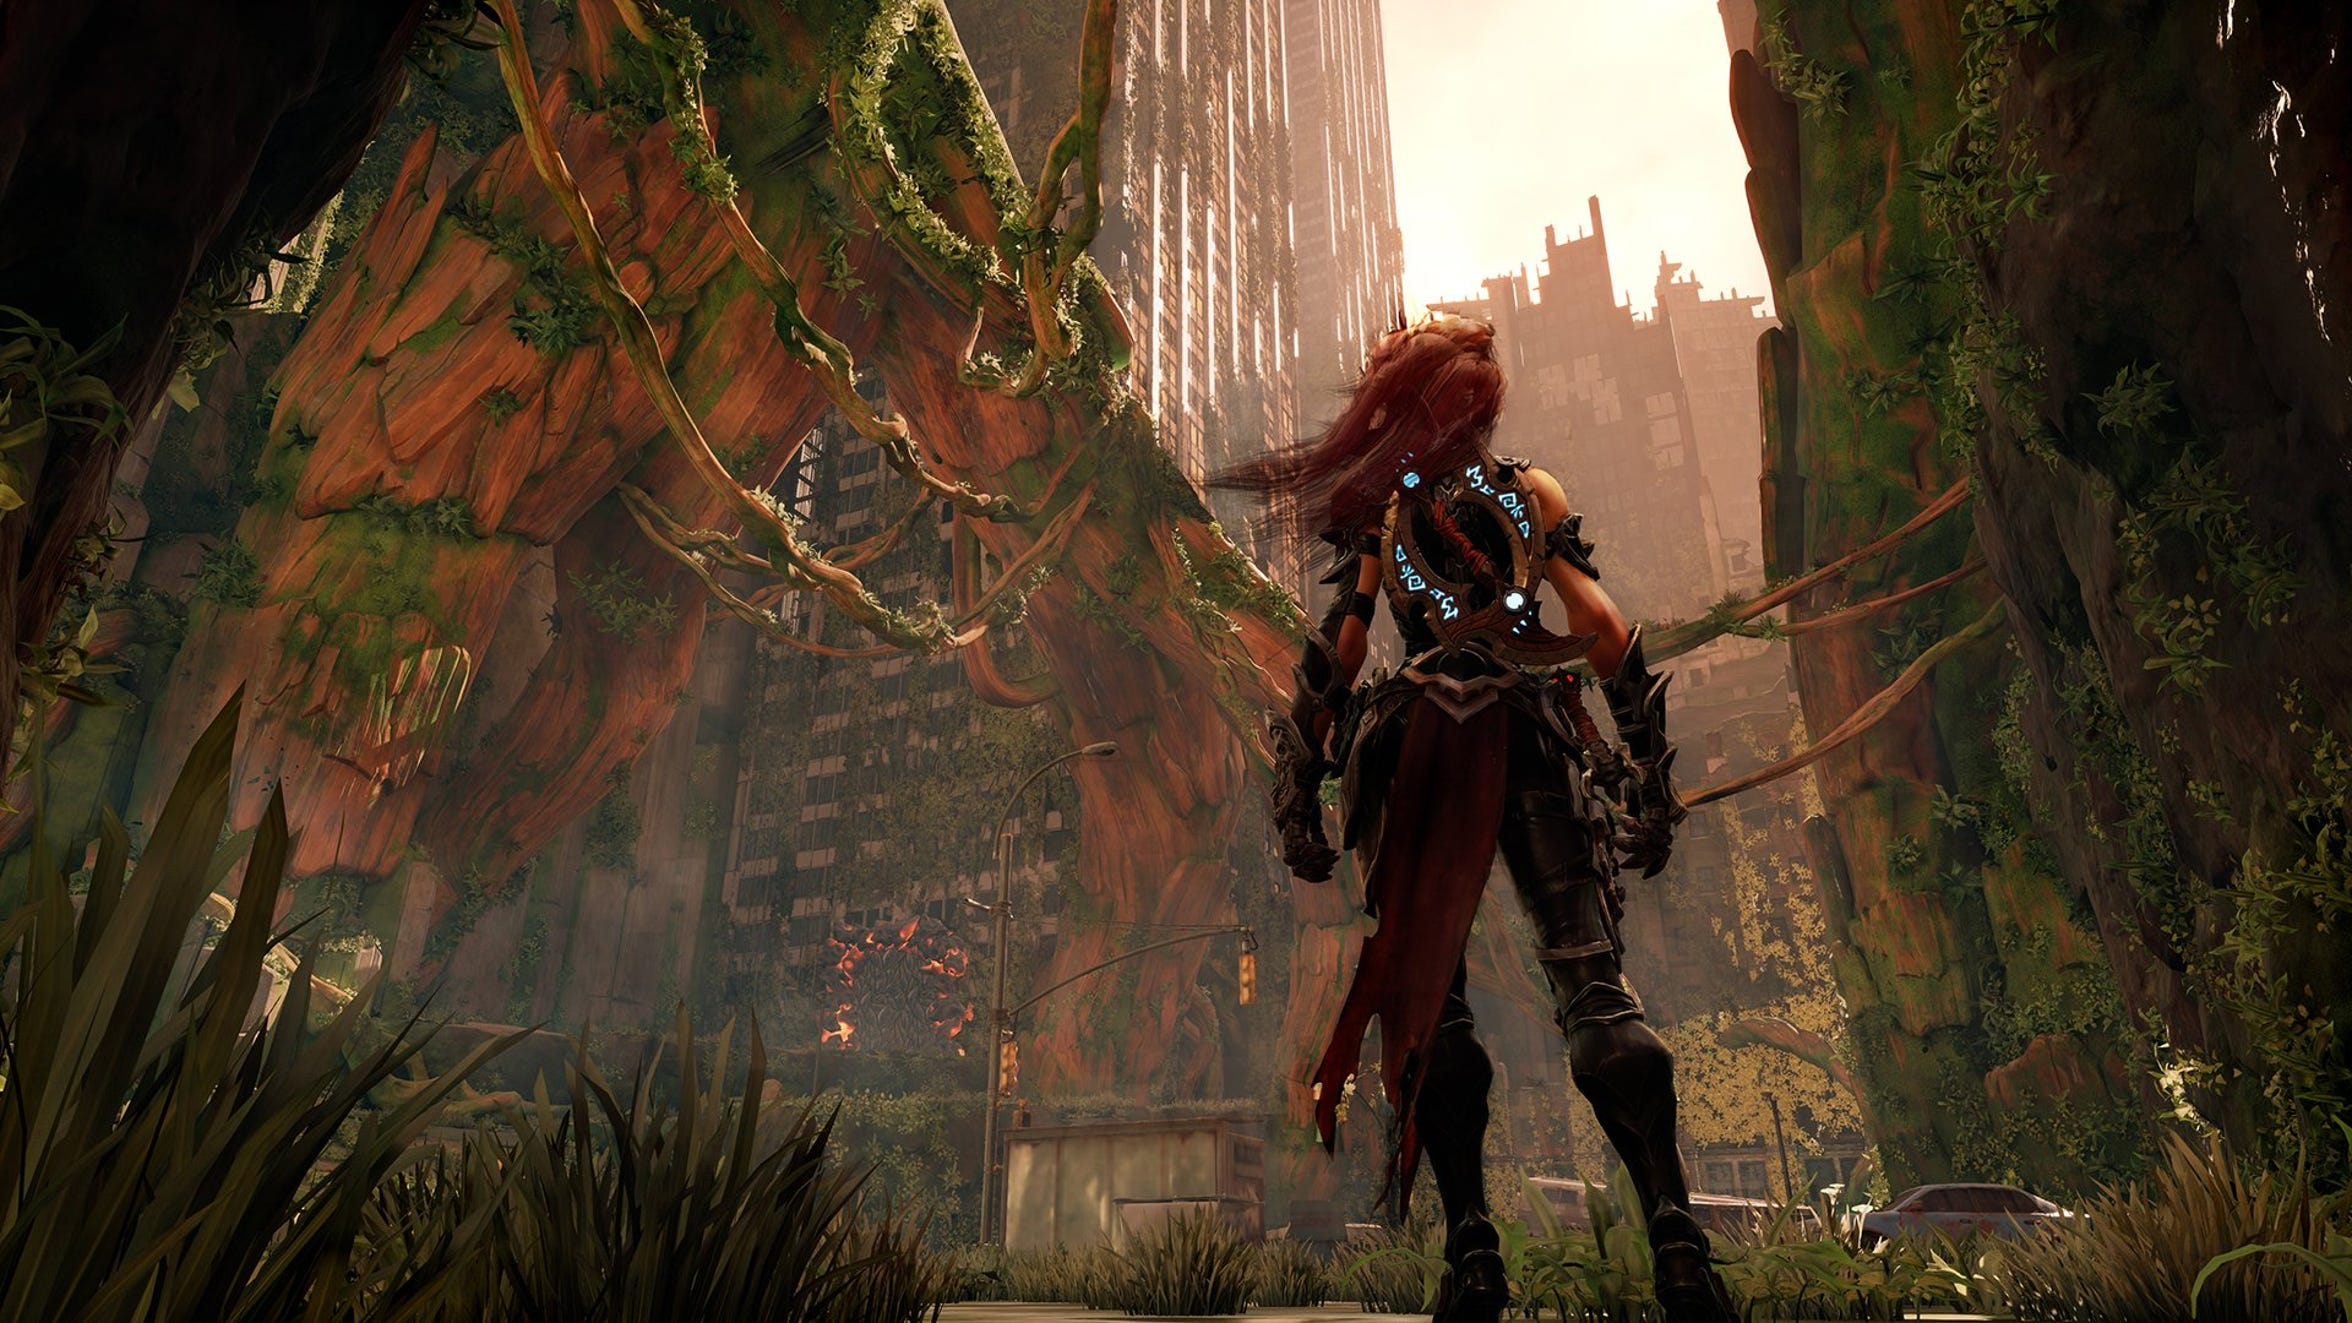 Darksiders III for PC, PS4 and Xbox One.